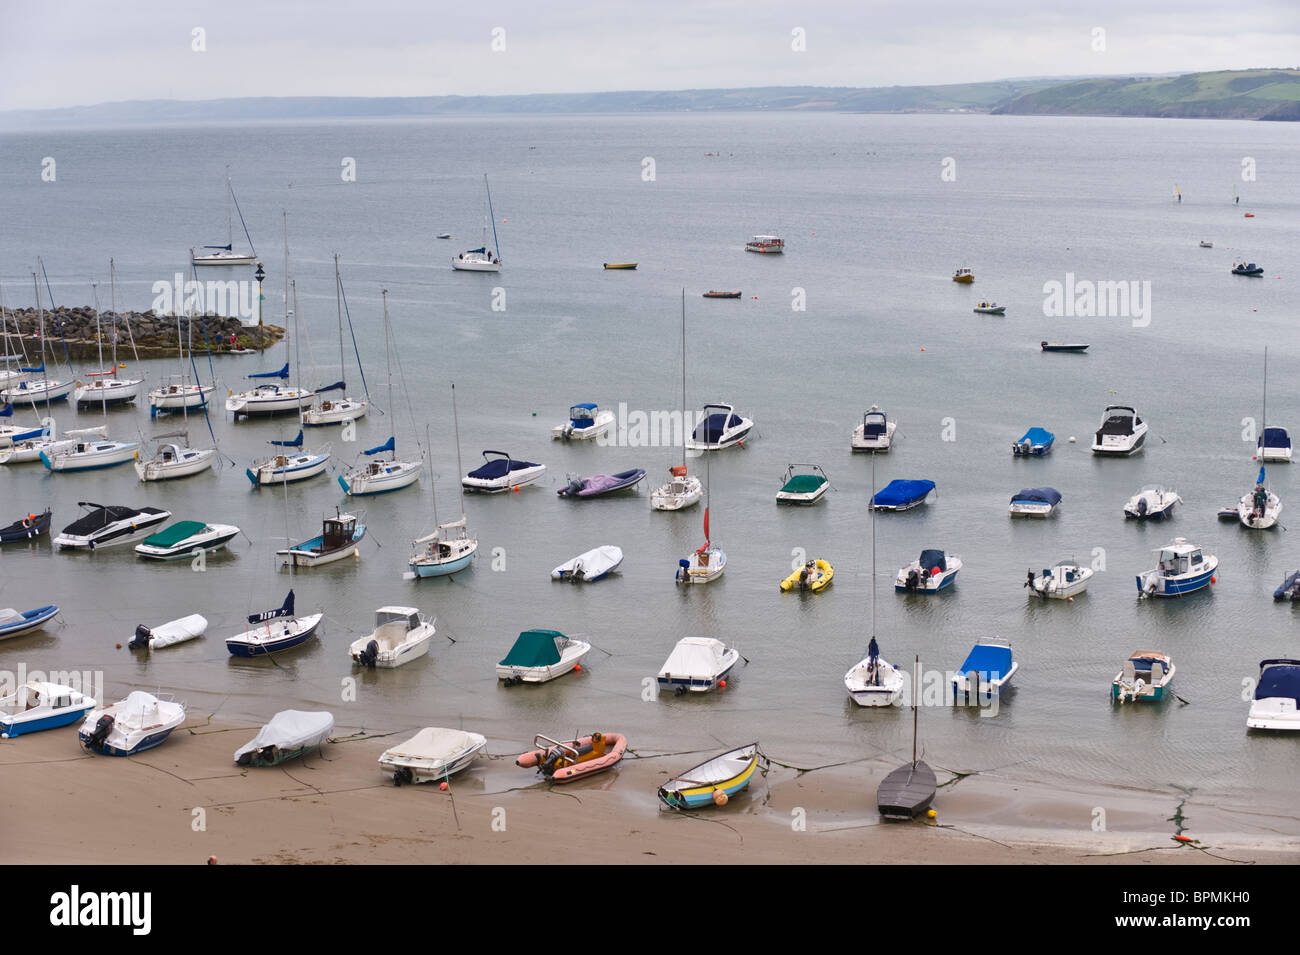 View over moorings for leisure craft in the Welsh seaside holiday resort of New Quay Ceredigion West Wales UK - Stock Image